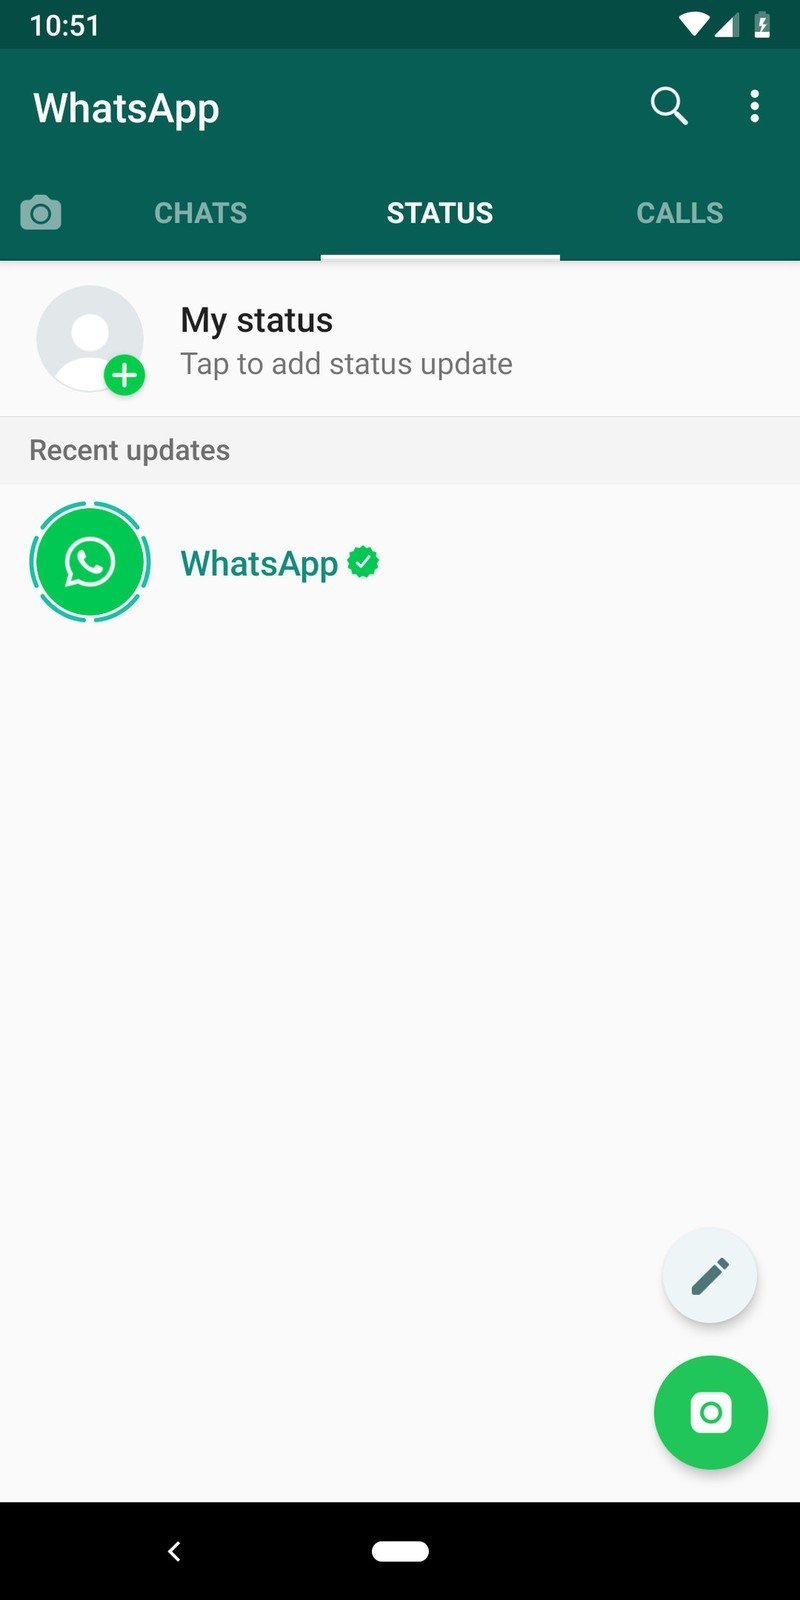 how-to-set-up-whatsapp-android-2018-20.j